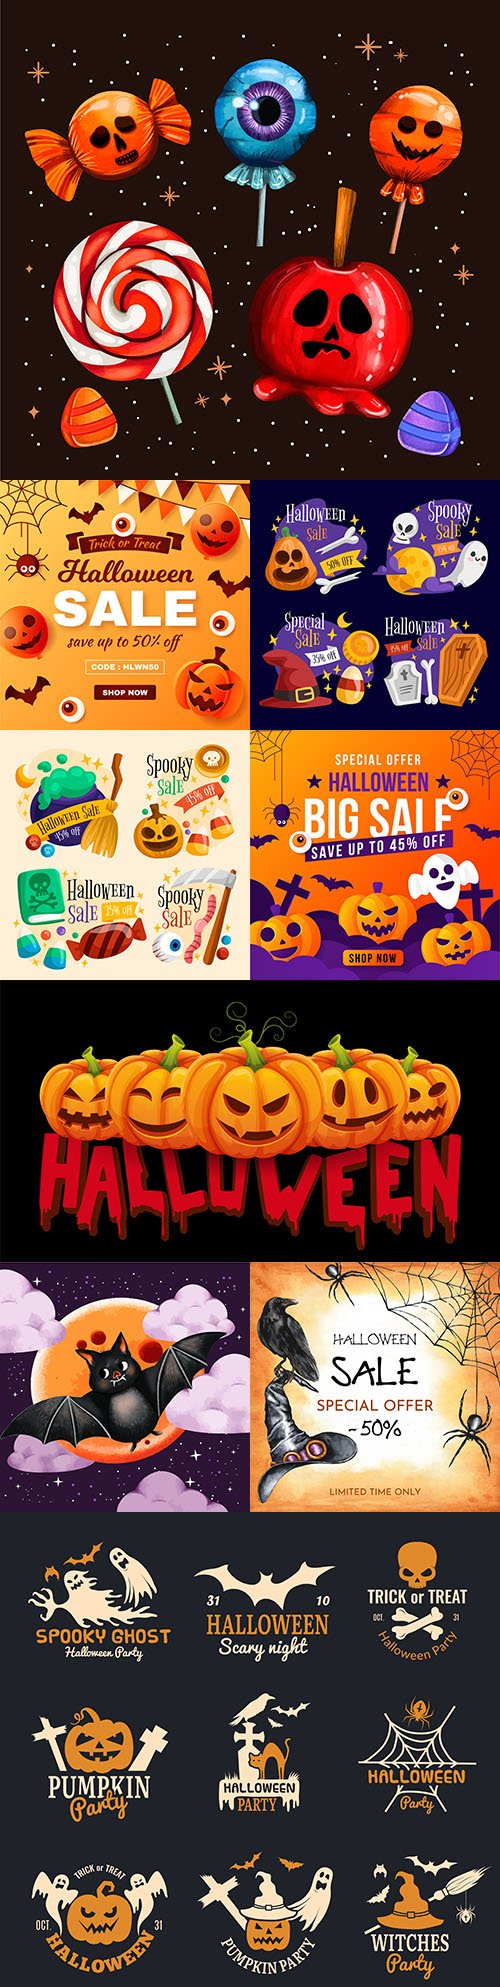 Happy Halloween holiday banner illustration collection 4